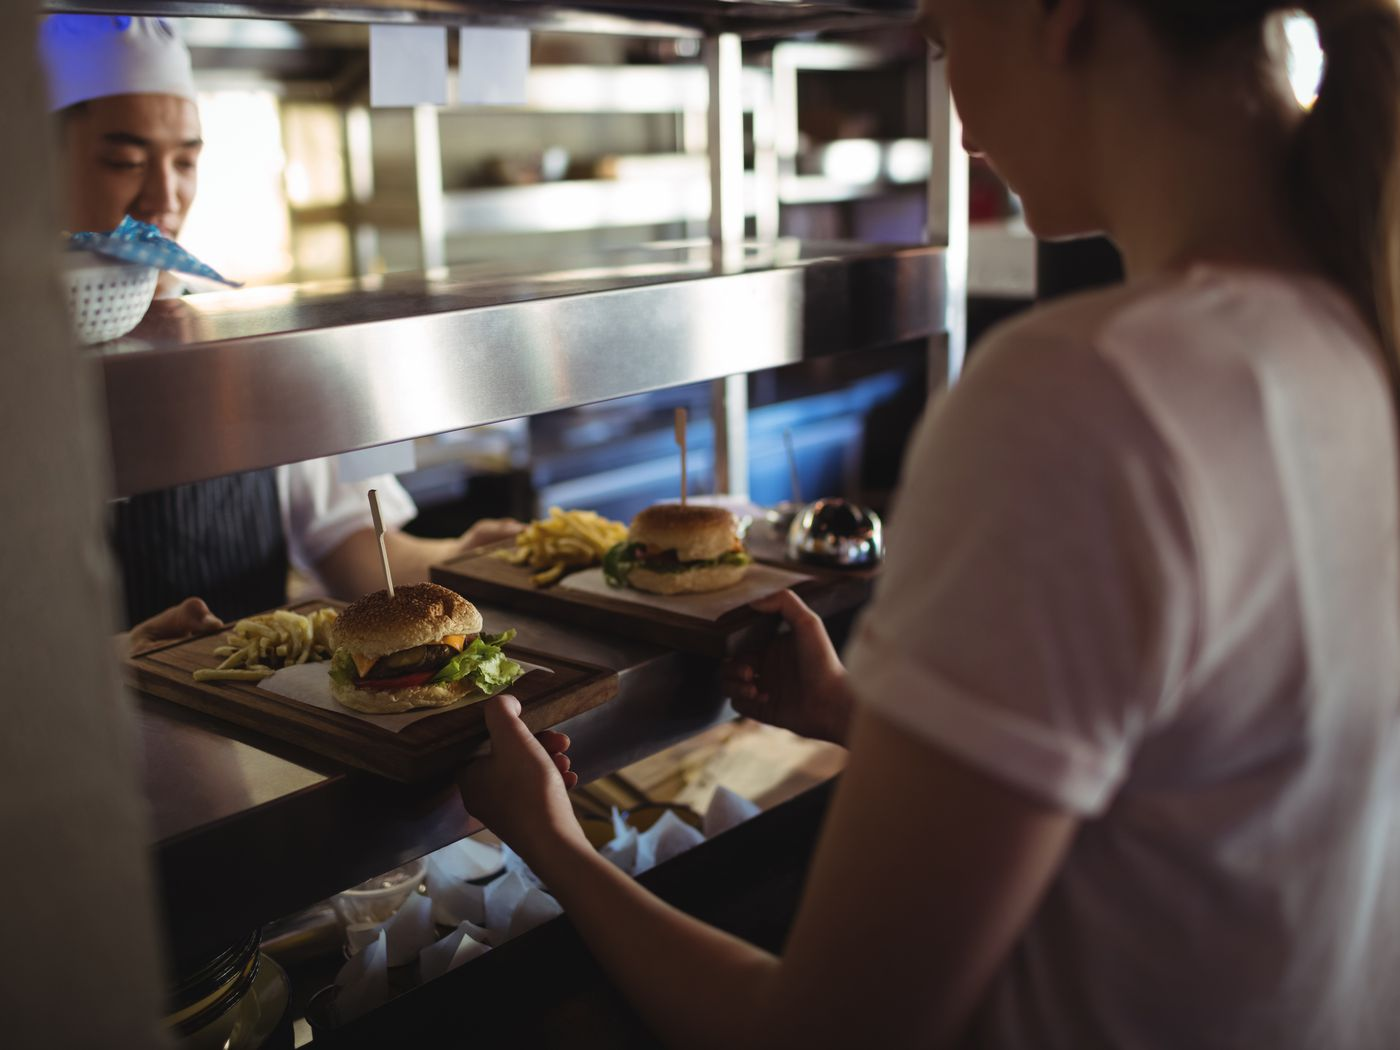 Food Service Workers Being Laid Off During Coronavirus Pandemic